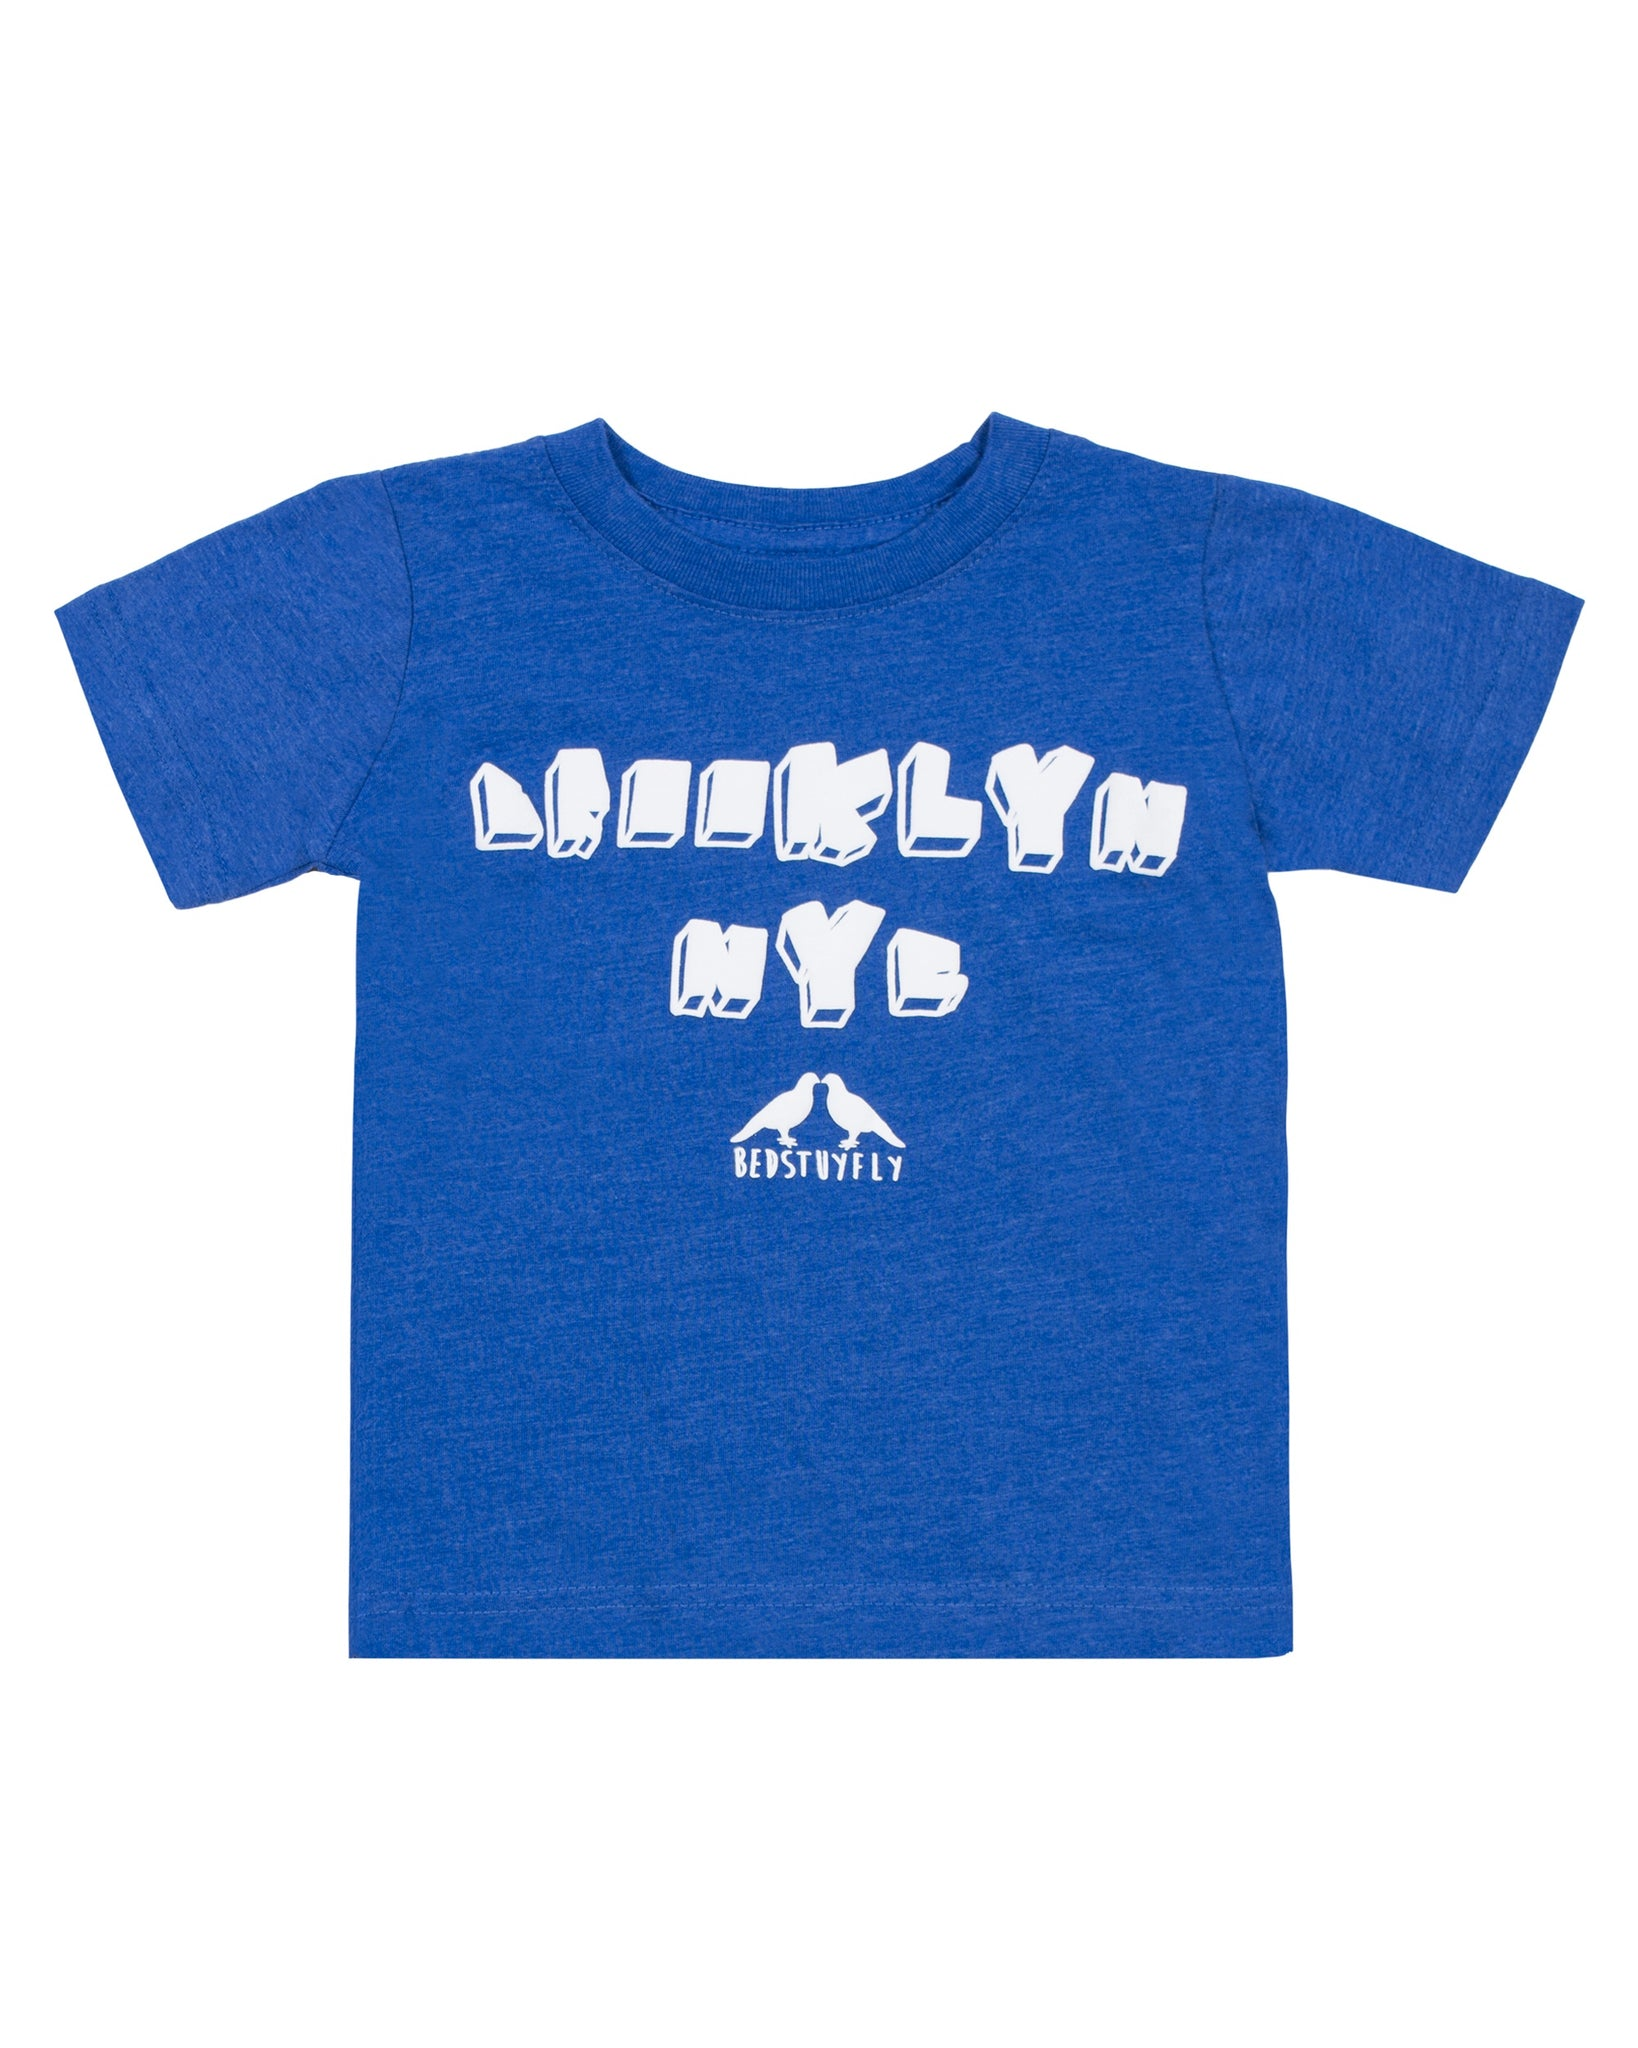 Brooklyn NY Kids T-Shirt (Blu)